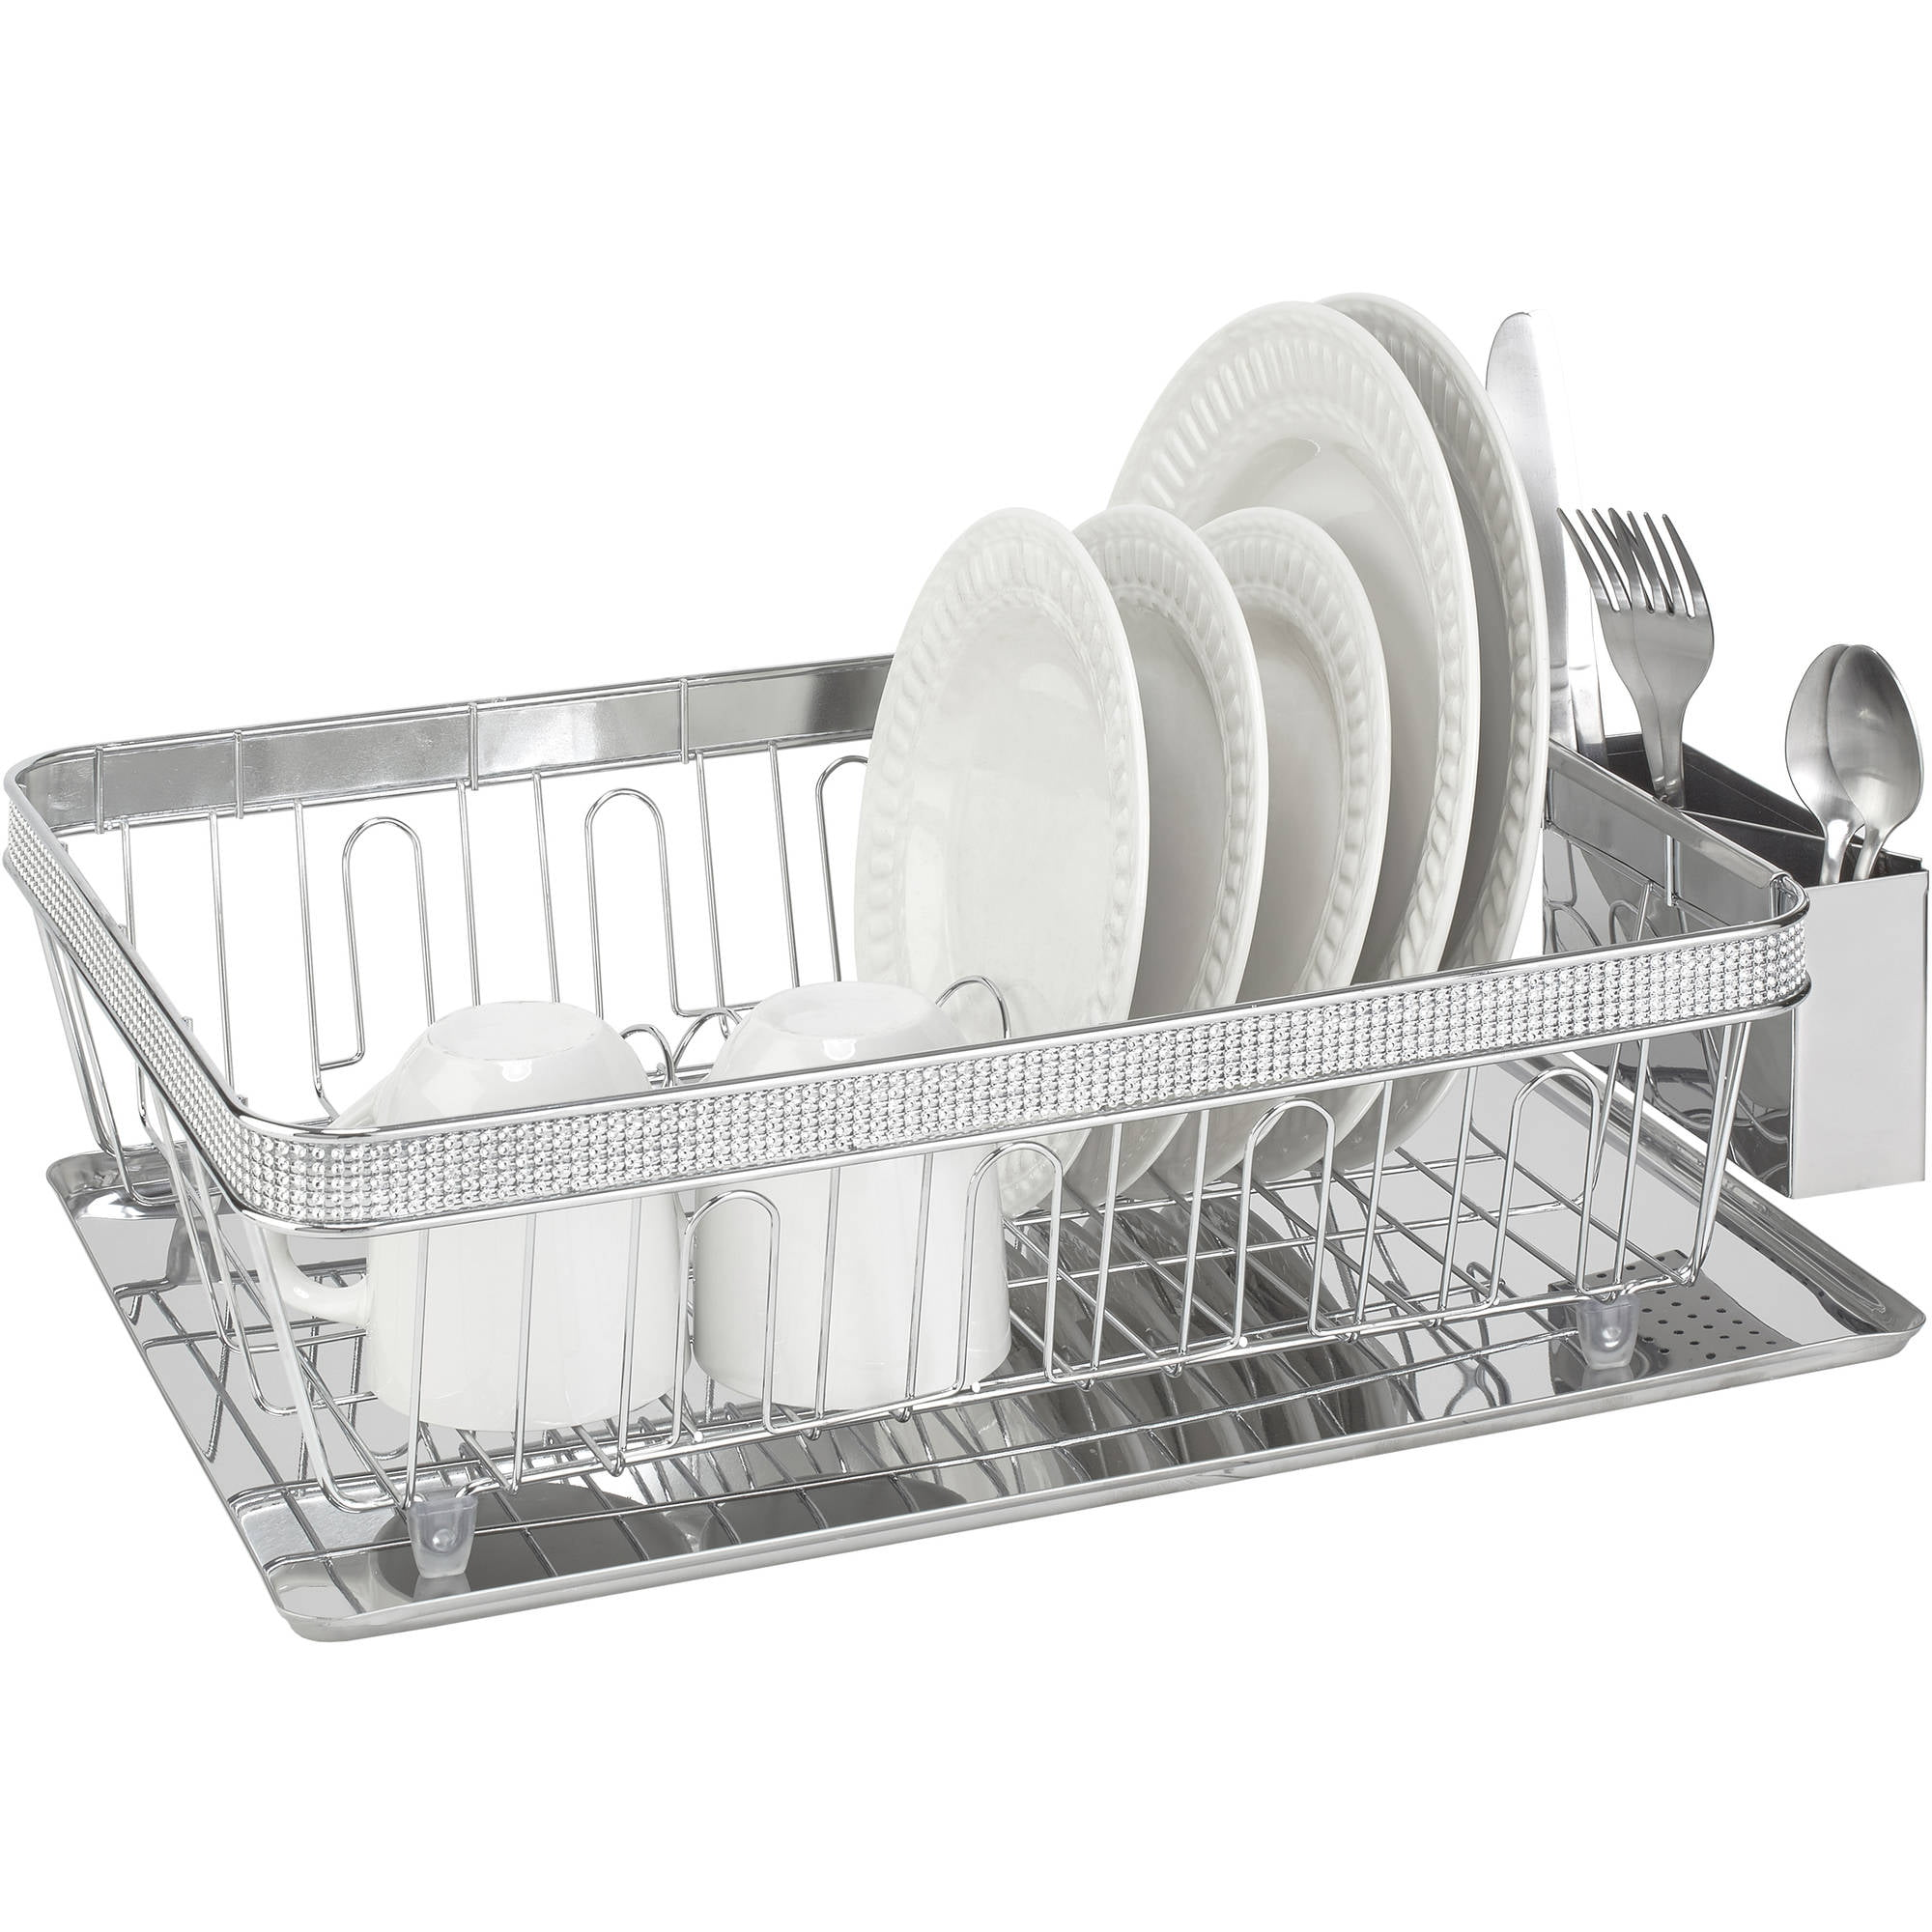 Kitchen Details Dish Rack With Cub And Tray, Chrome Pave Diamond Design by Kennedy International, INC.